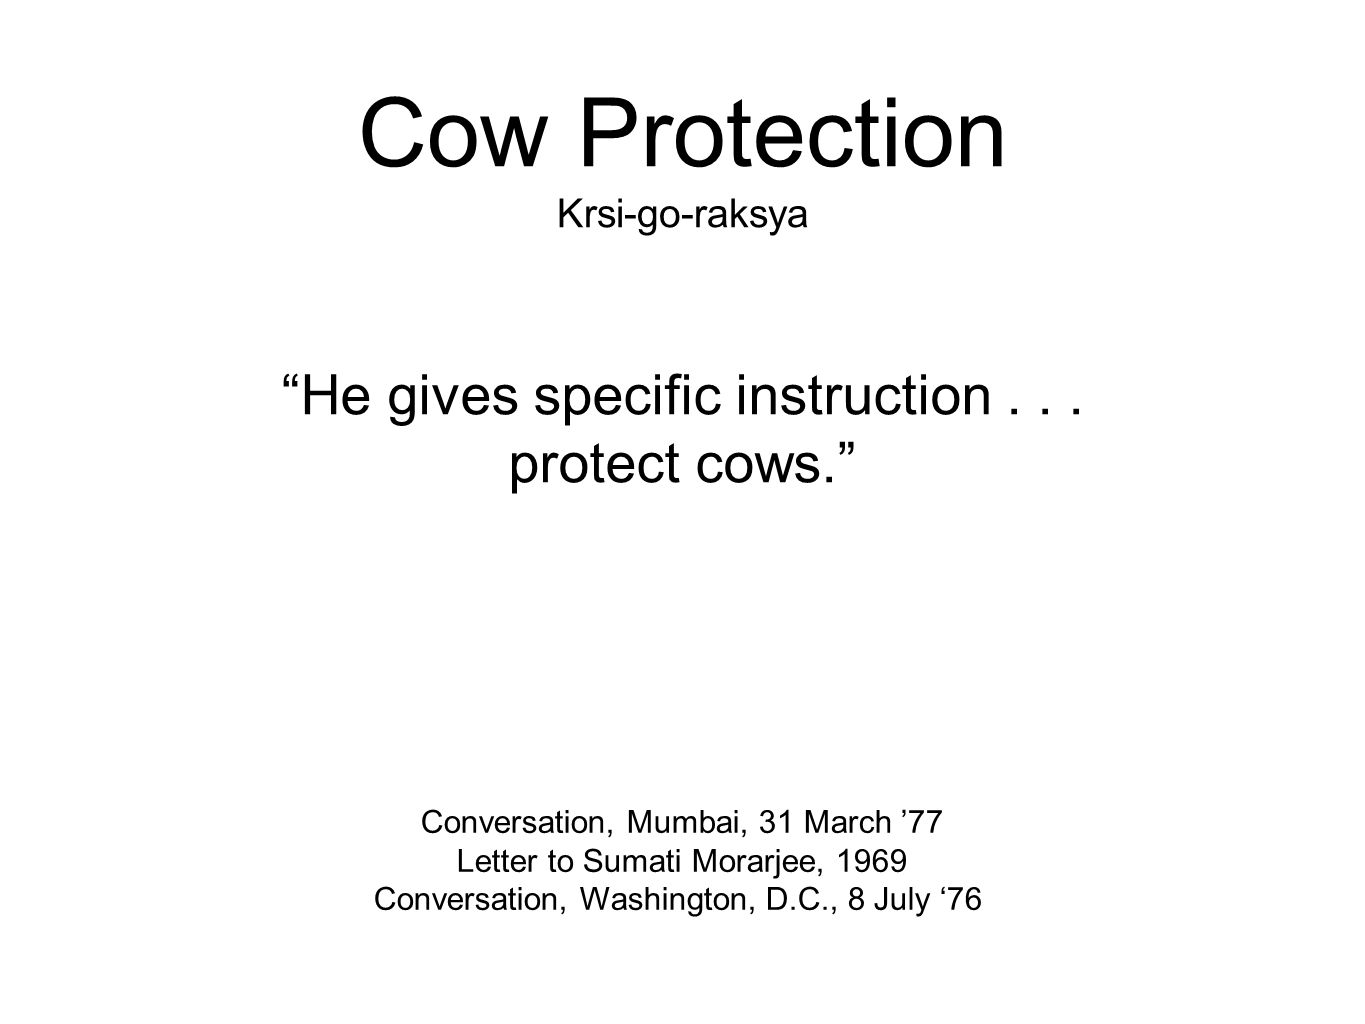 Cow Protection Krsi-go-raksya He gives specific instruction...